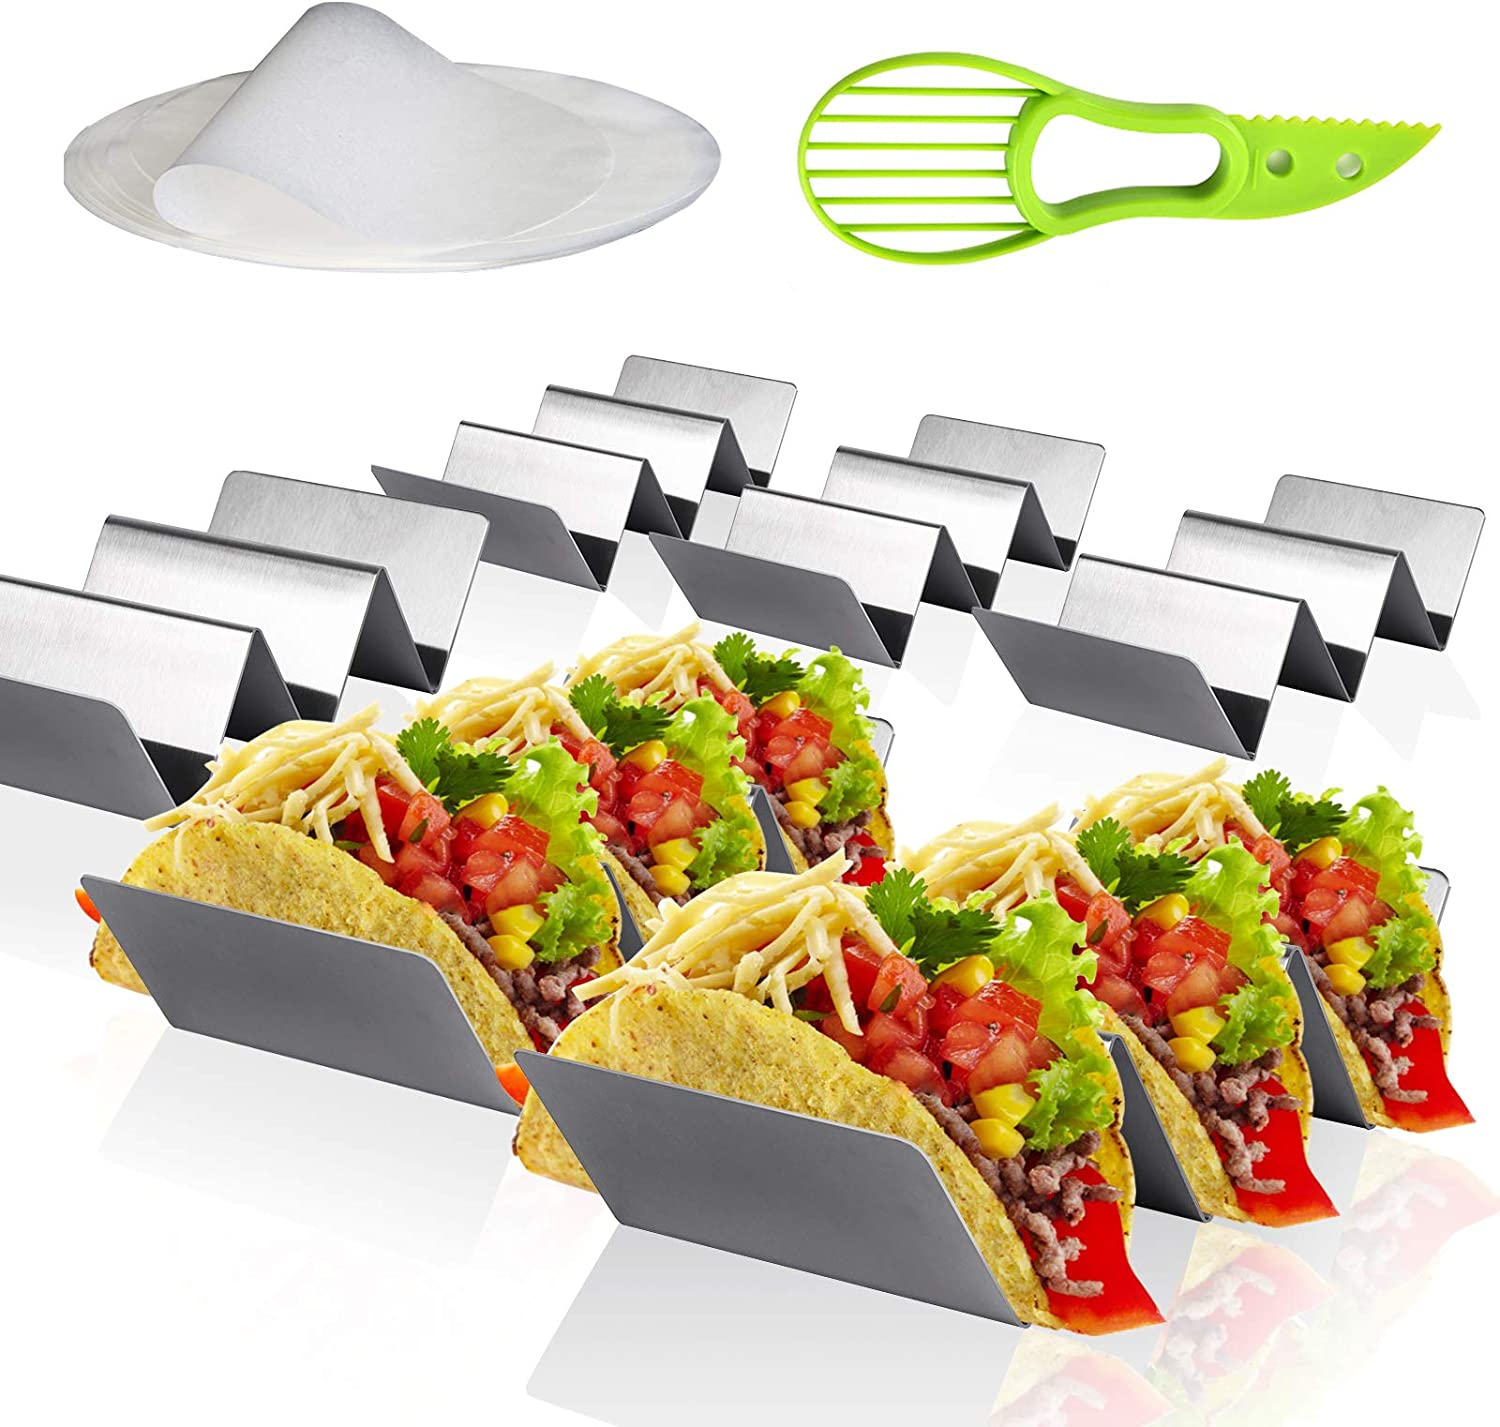 Glomio Taco Holder Stand - Set of 6 Large Taco Tray Food Grade Stainless Steel Racks Hold up 2-3 Tacos Grilling Rack for Tortilla/Burrito/Hotdog, Oven Dishwasher Grill Save